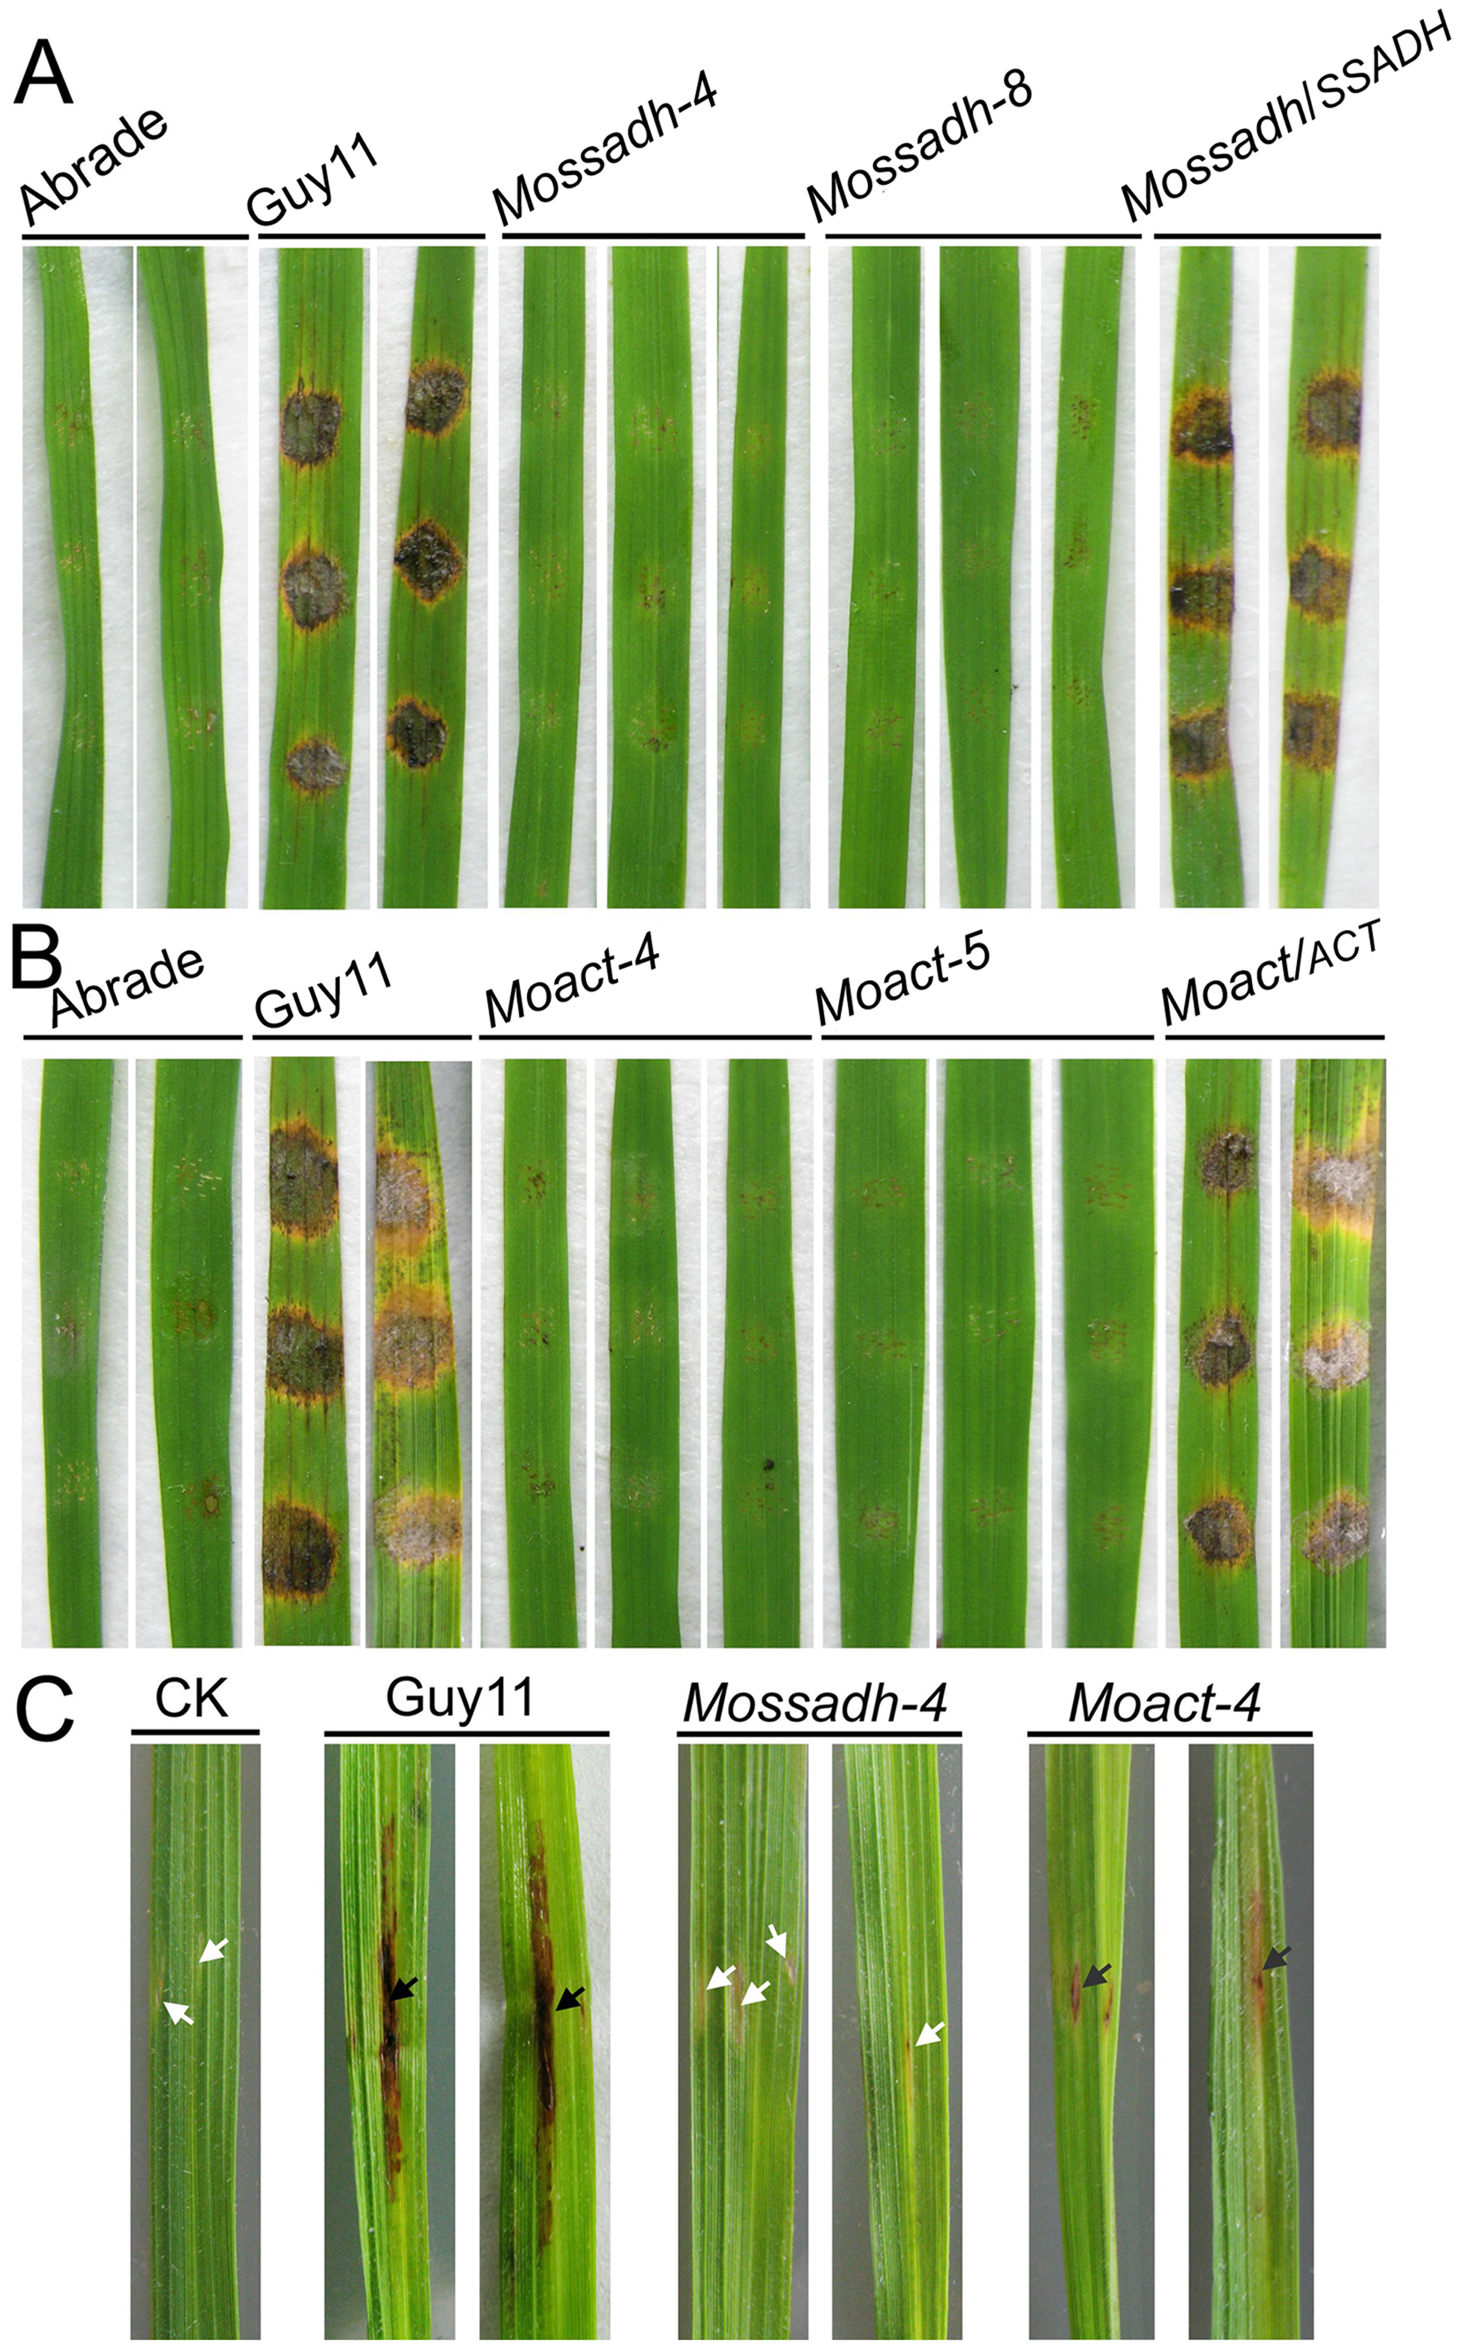 Pathogenicity test of <i>Mossadh</i> and <i>Moact</i> mutant strains on the wounded rice leaves.